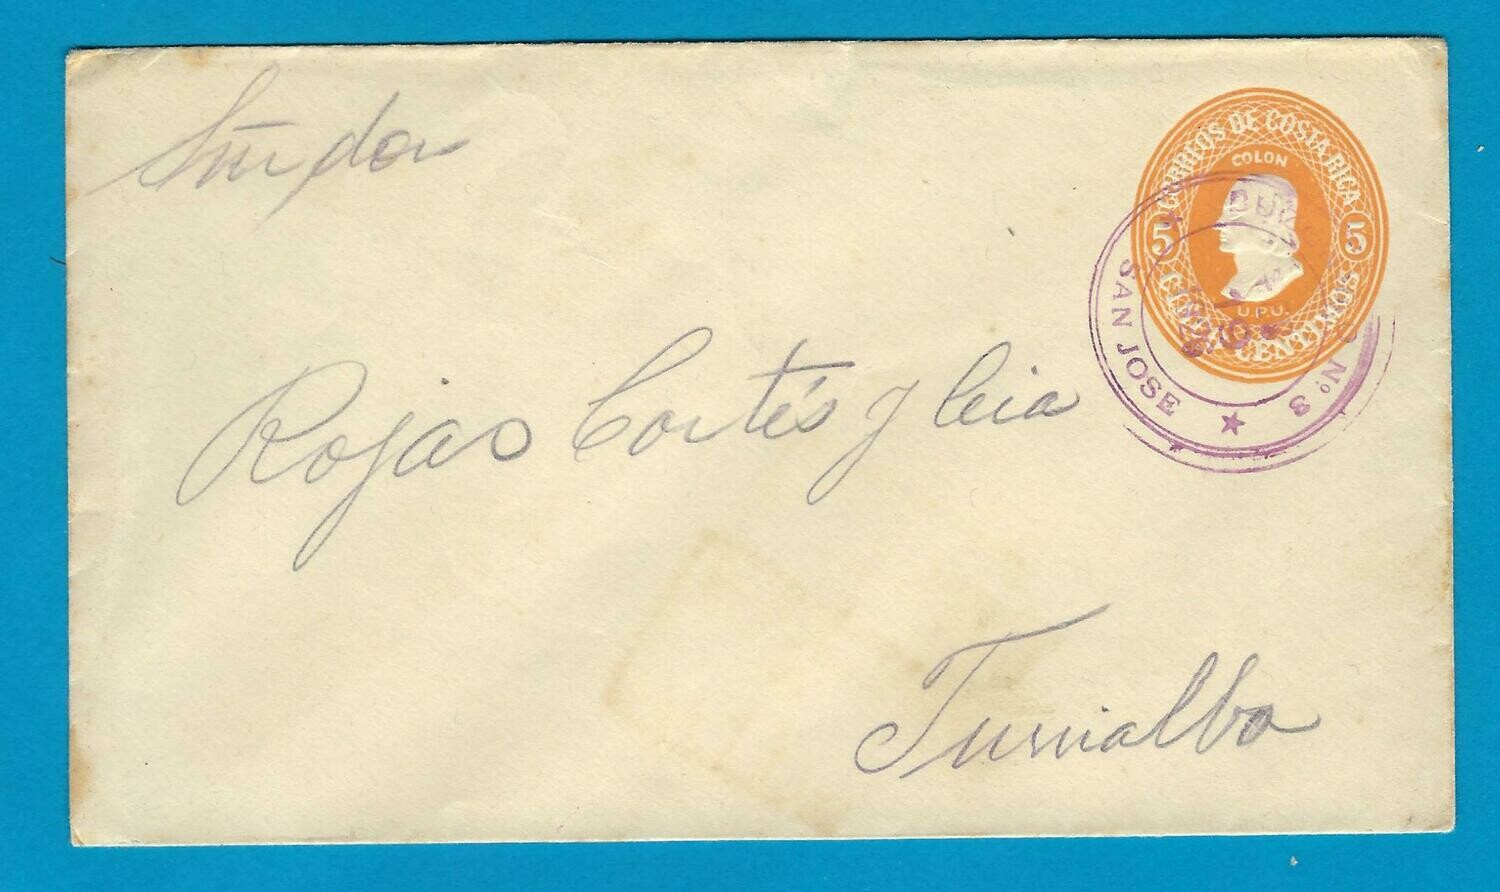 COSTA RICA postal envelope 1926 Buzonero no 3 to Turrialbo